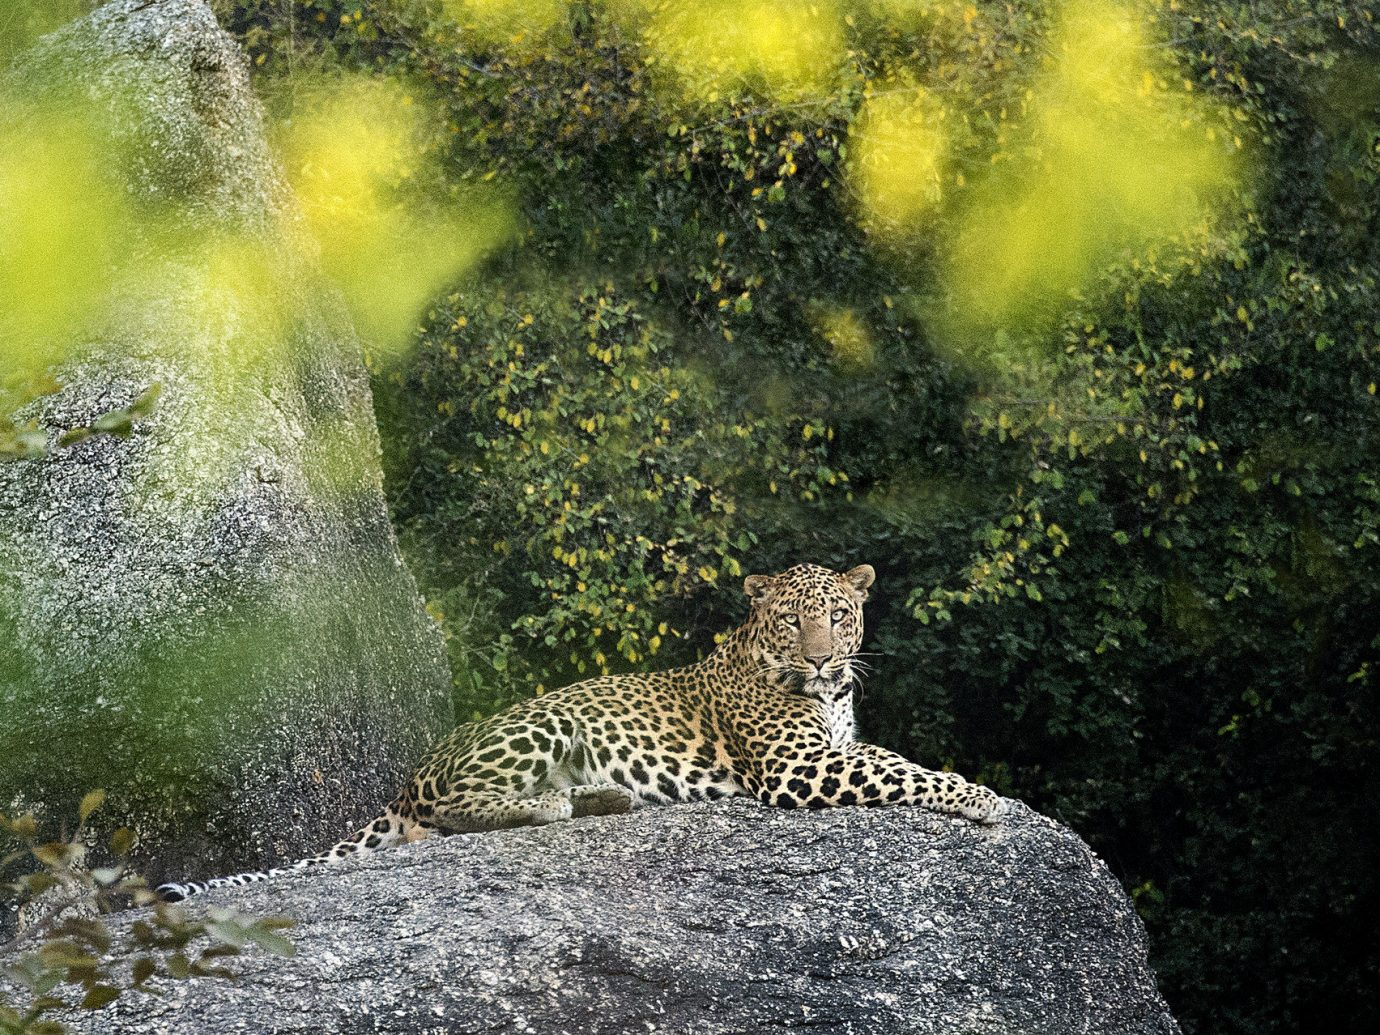 Hotels Safari big cat outdoor animal Nature mammal leopard Wildlife fauna cat like mammal Jungle sunlight woodland